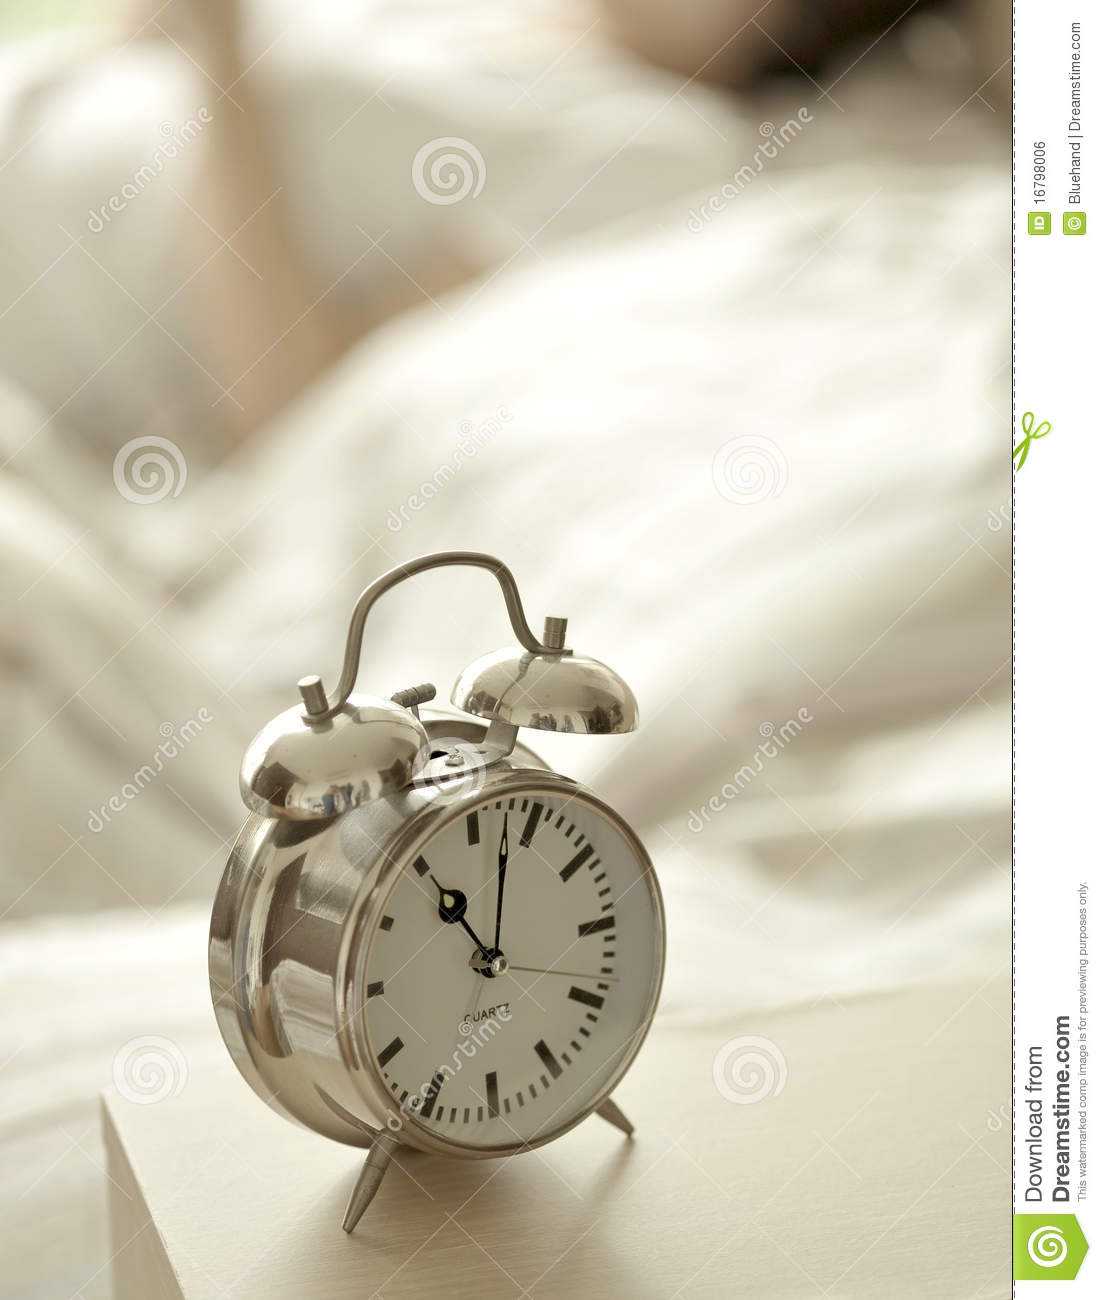 alarm clock in bedroom - Bedroom Clock